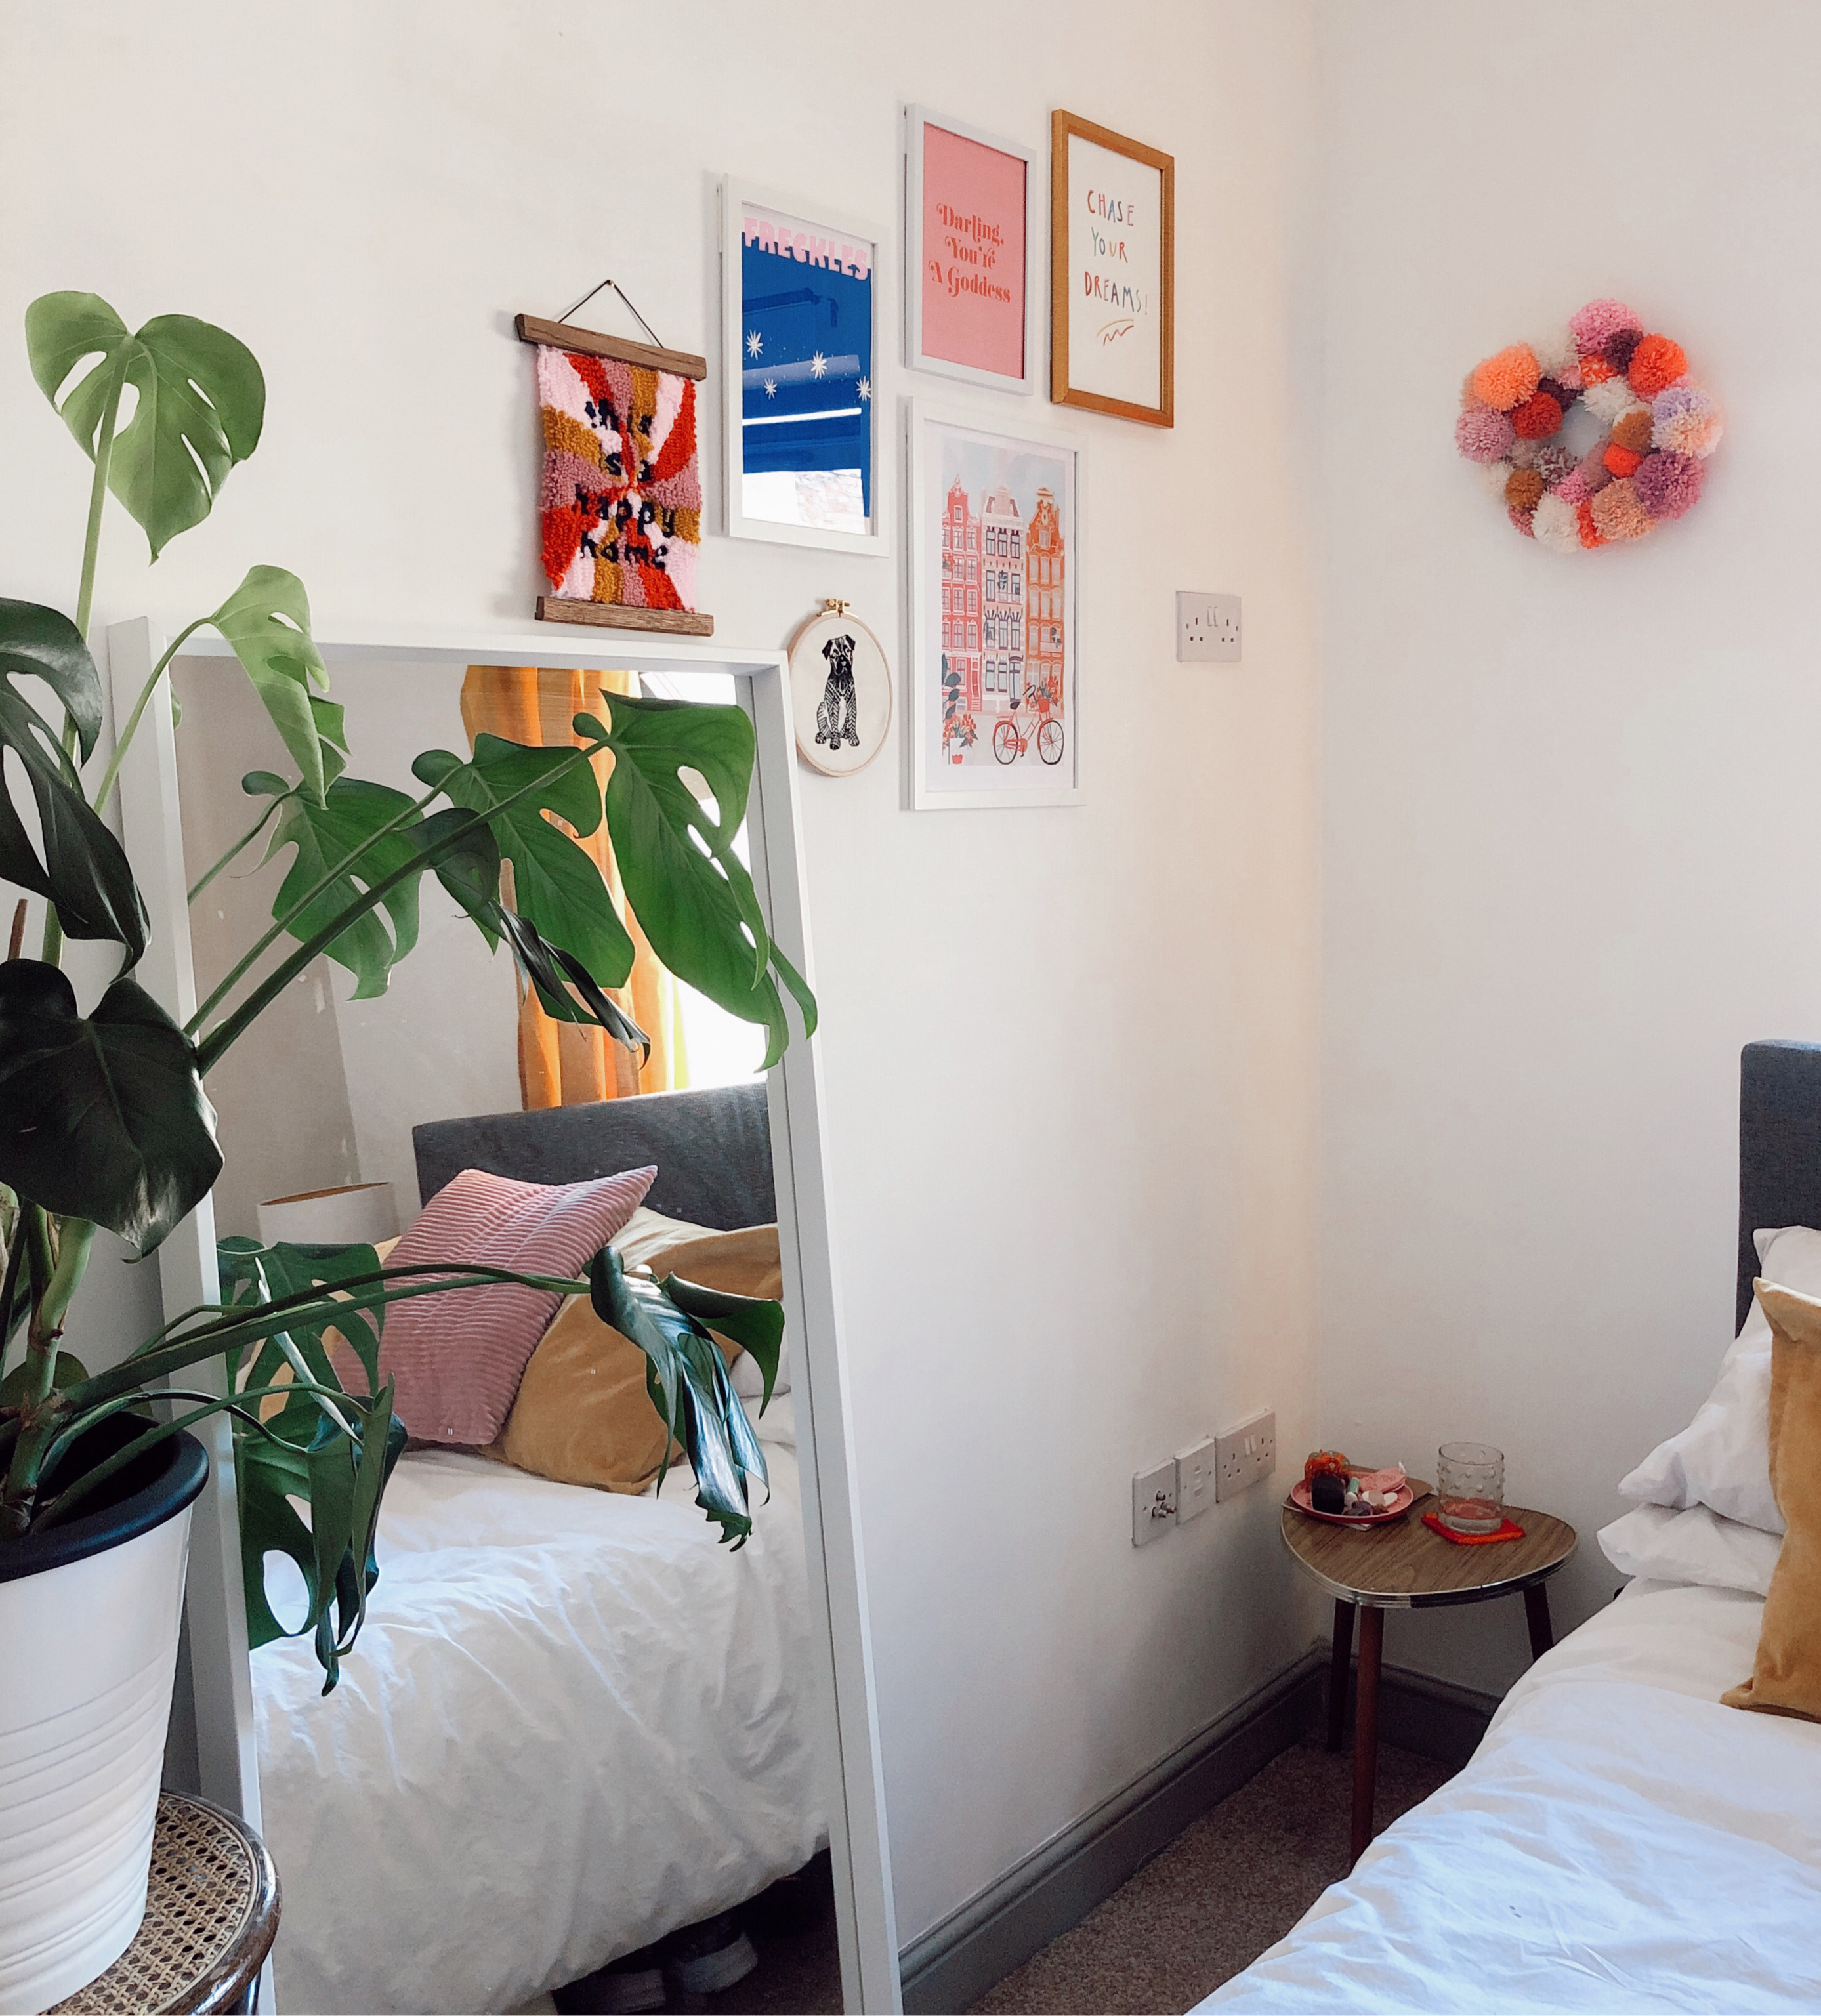 white corner of bedroom with monstera plant, large mirror leaning against wall, bed with white sheets, mustard and pink throw cushions and a small colourful gallery wall